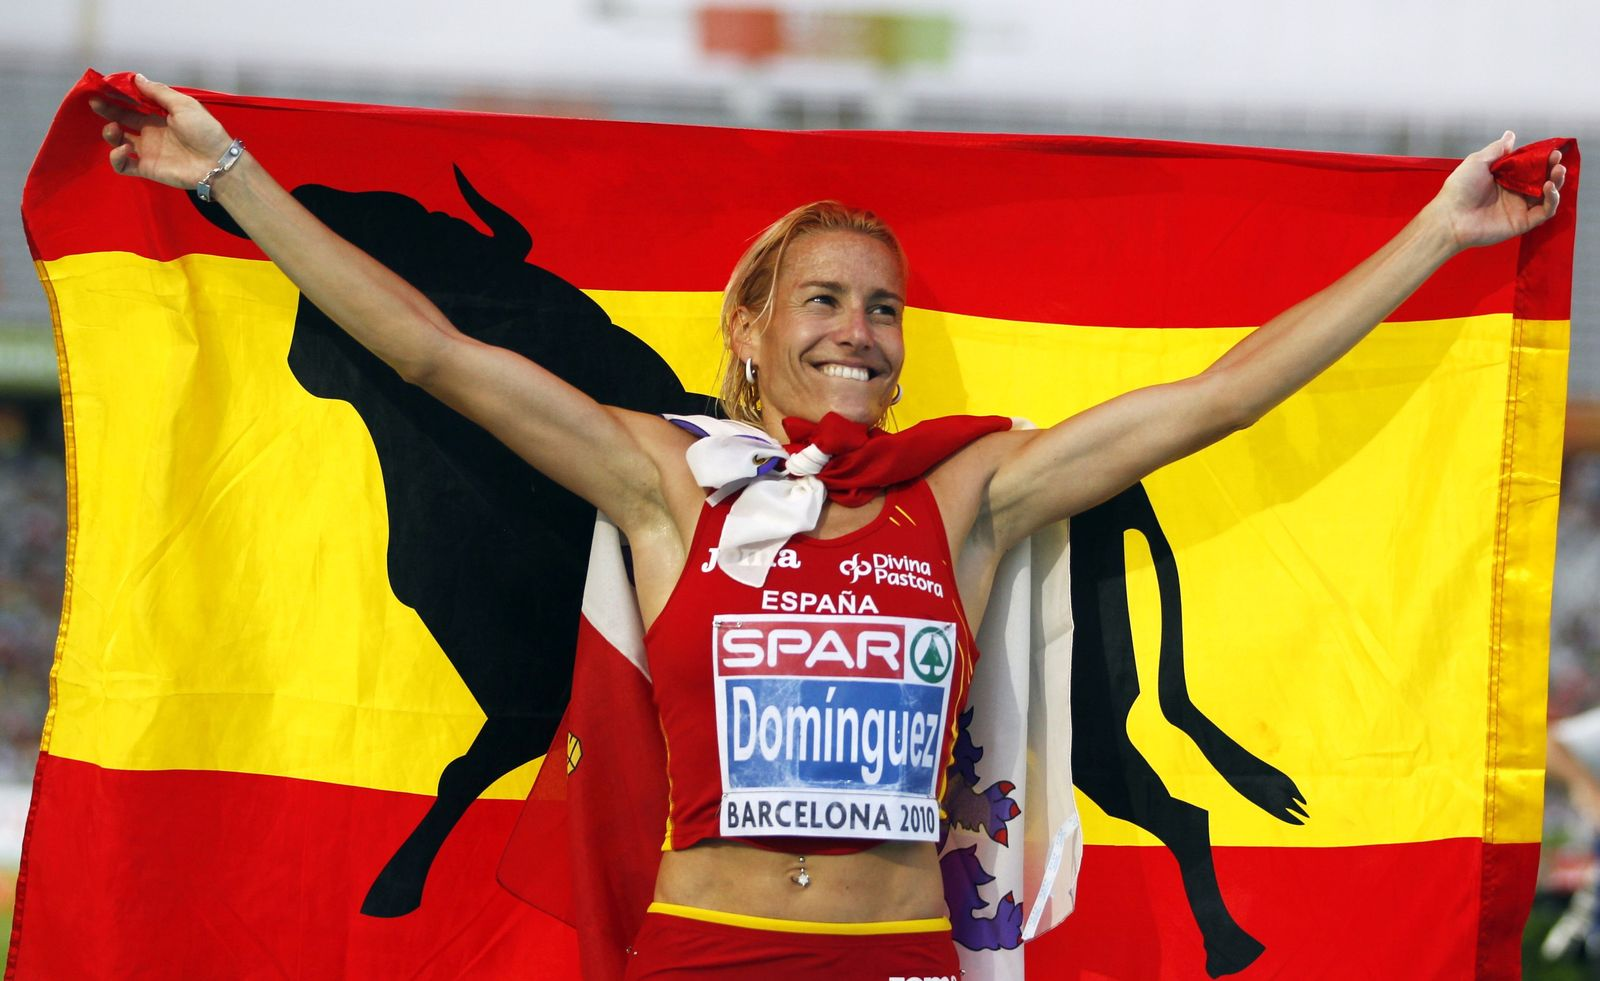 DOPING-SPAIN/DOMINGUEZ